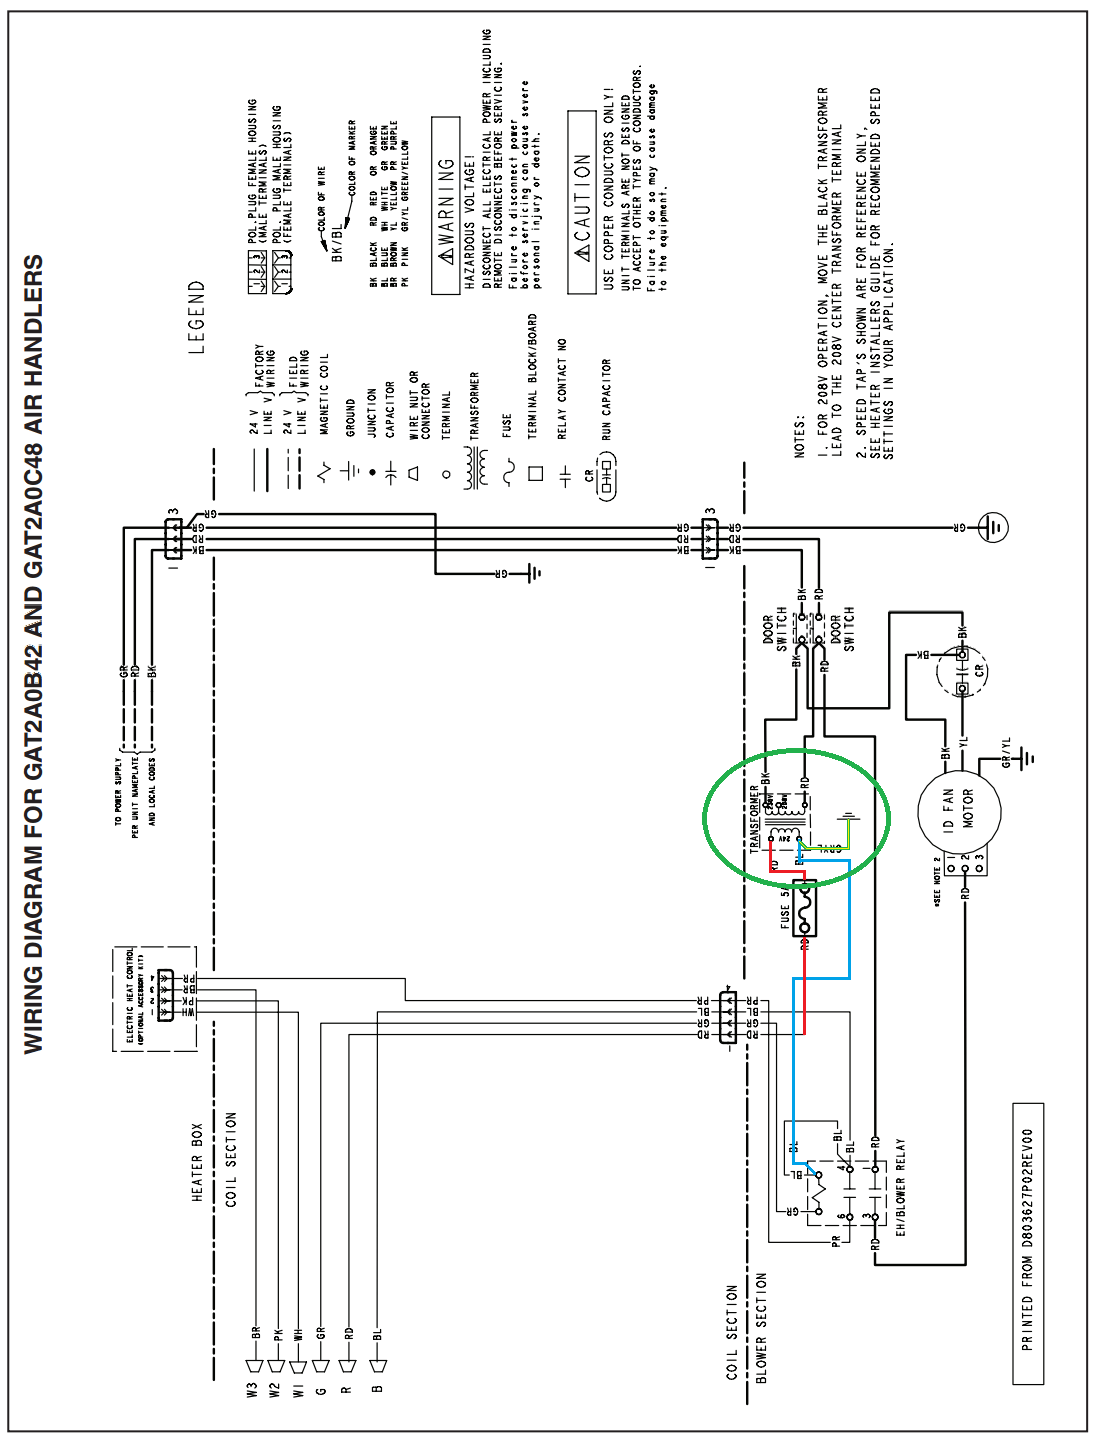 york hvac model e4fh030s06a wiring diagrams